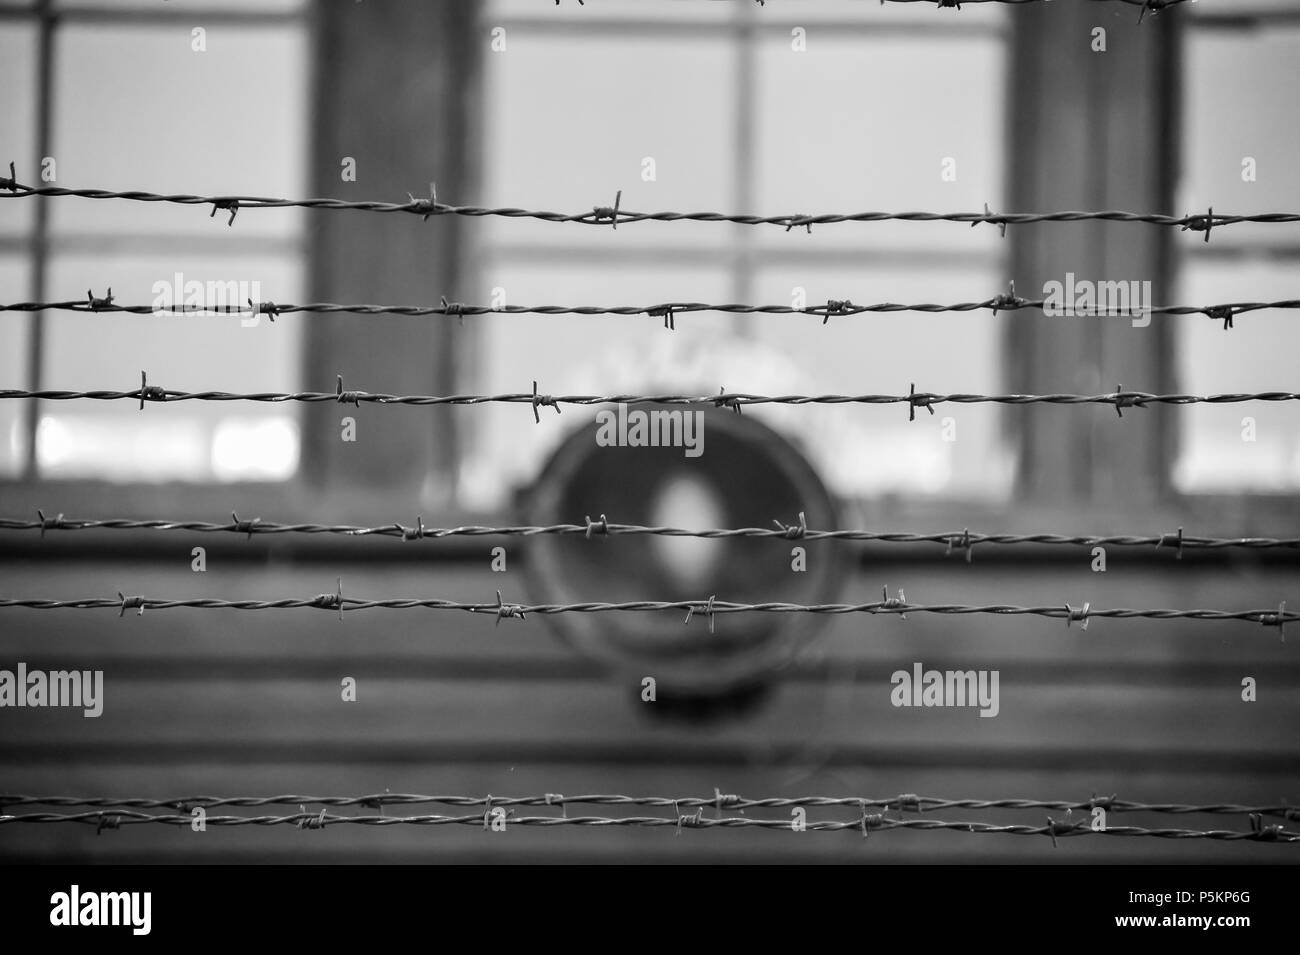 Close up barbed wire against blurred background with spotlight and windows on a building. Black & white image - Auschwitz concentration camp - Stock Image